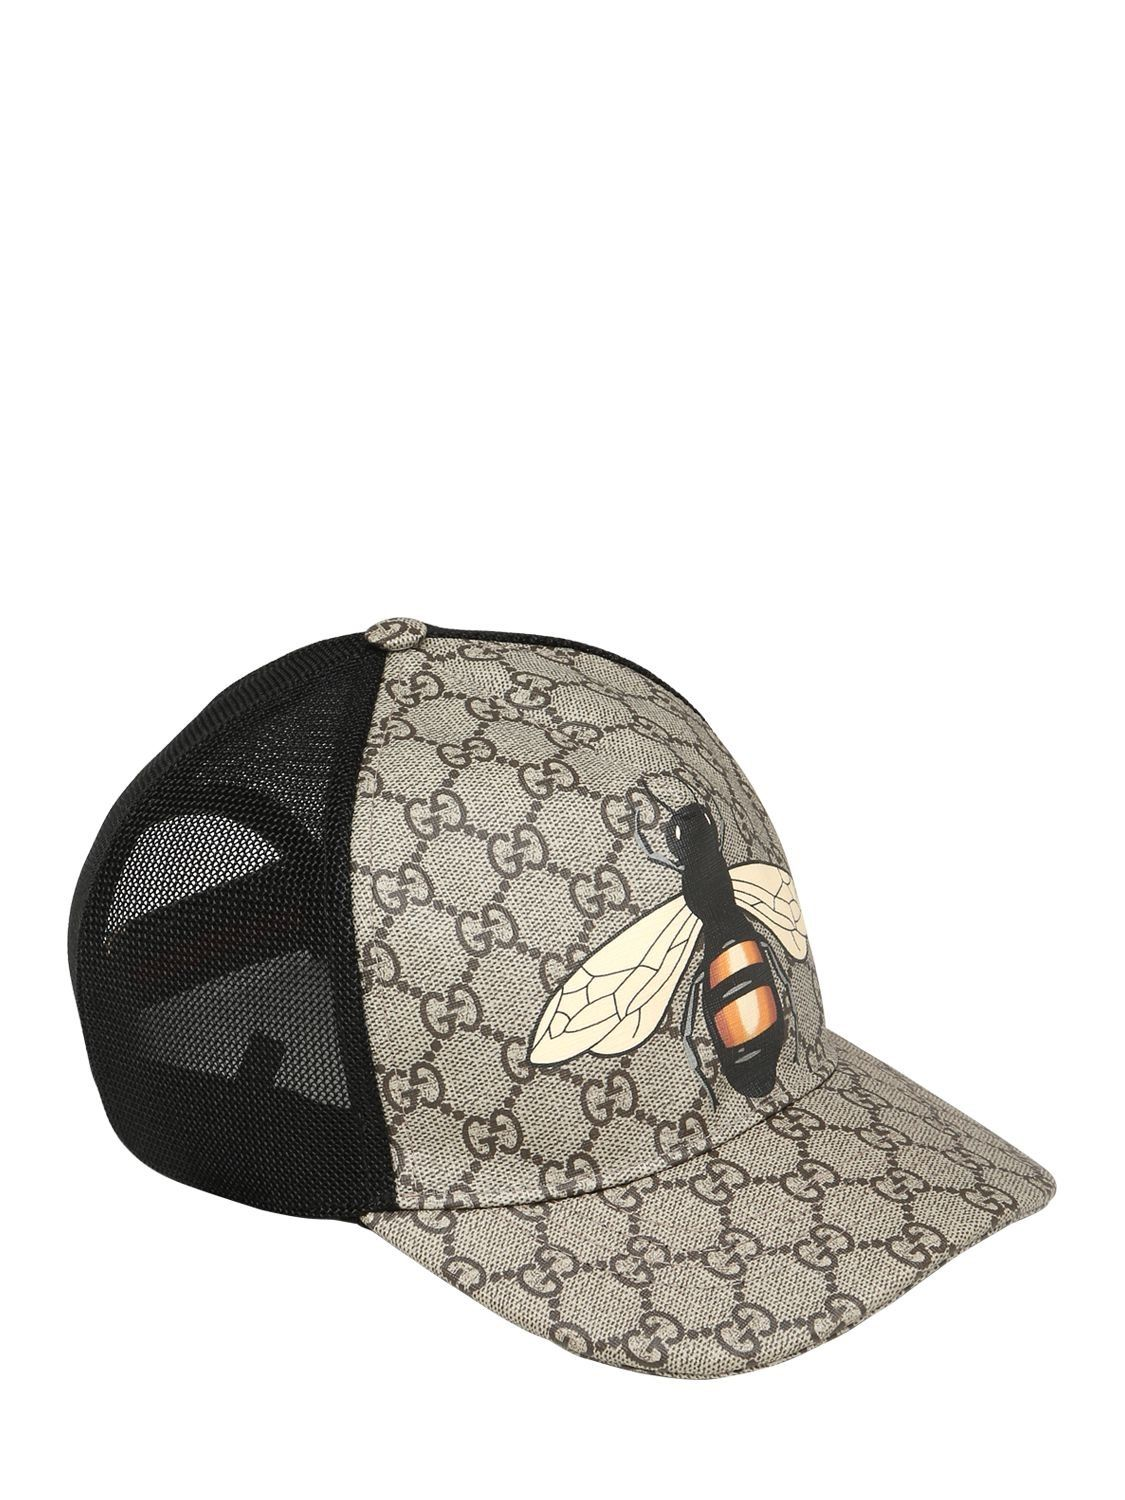 GUCCI BEE COATED GG CANVAS   MESH BASEBALL HAT.  gucci    725294bdc58